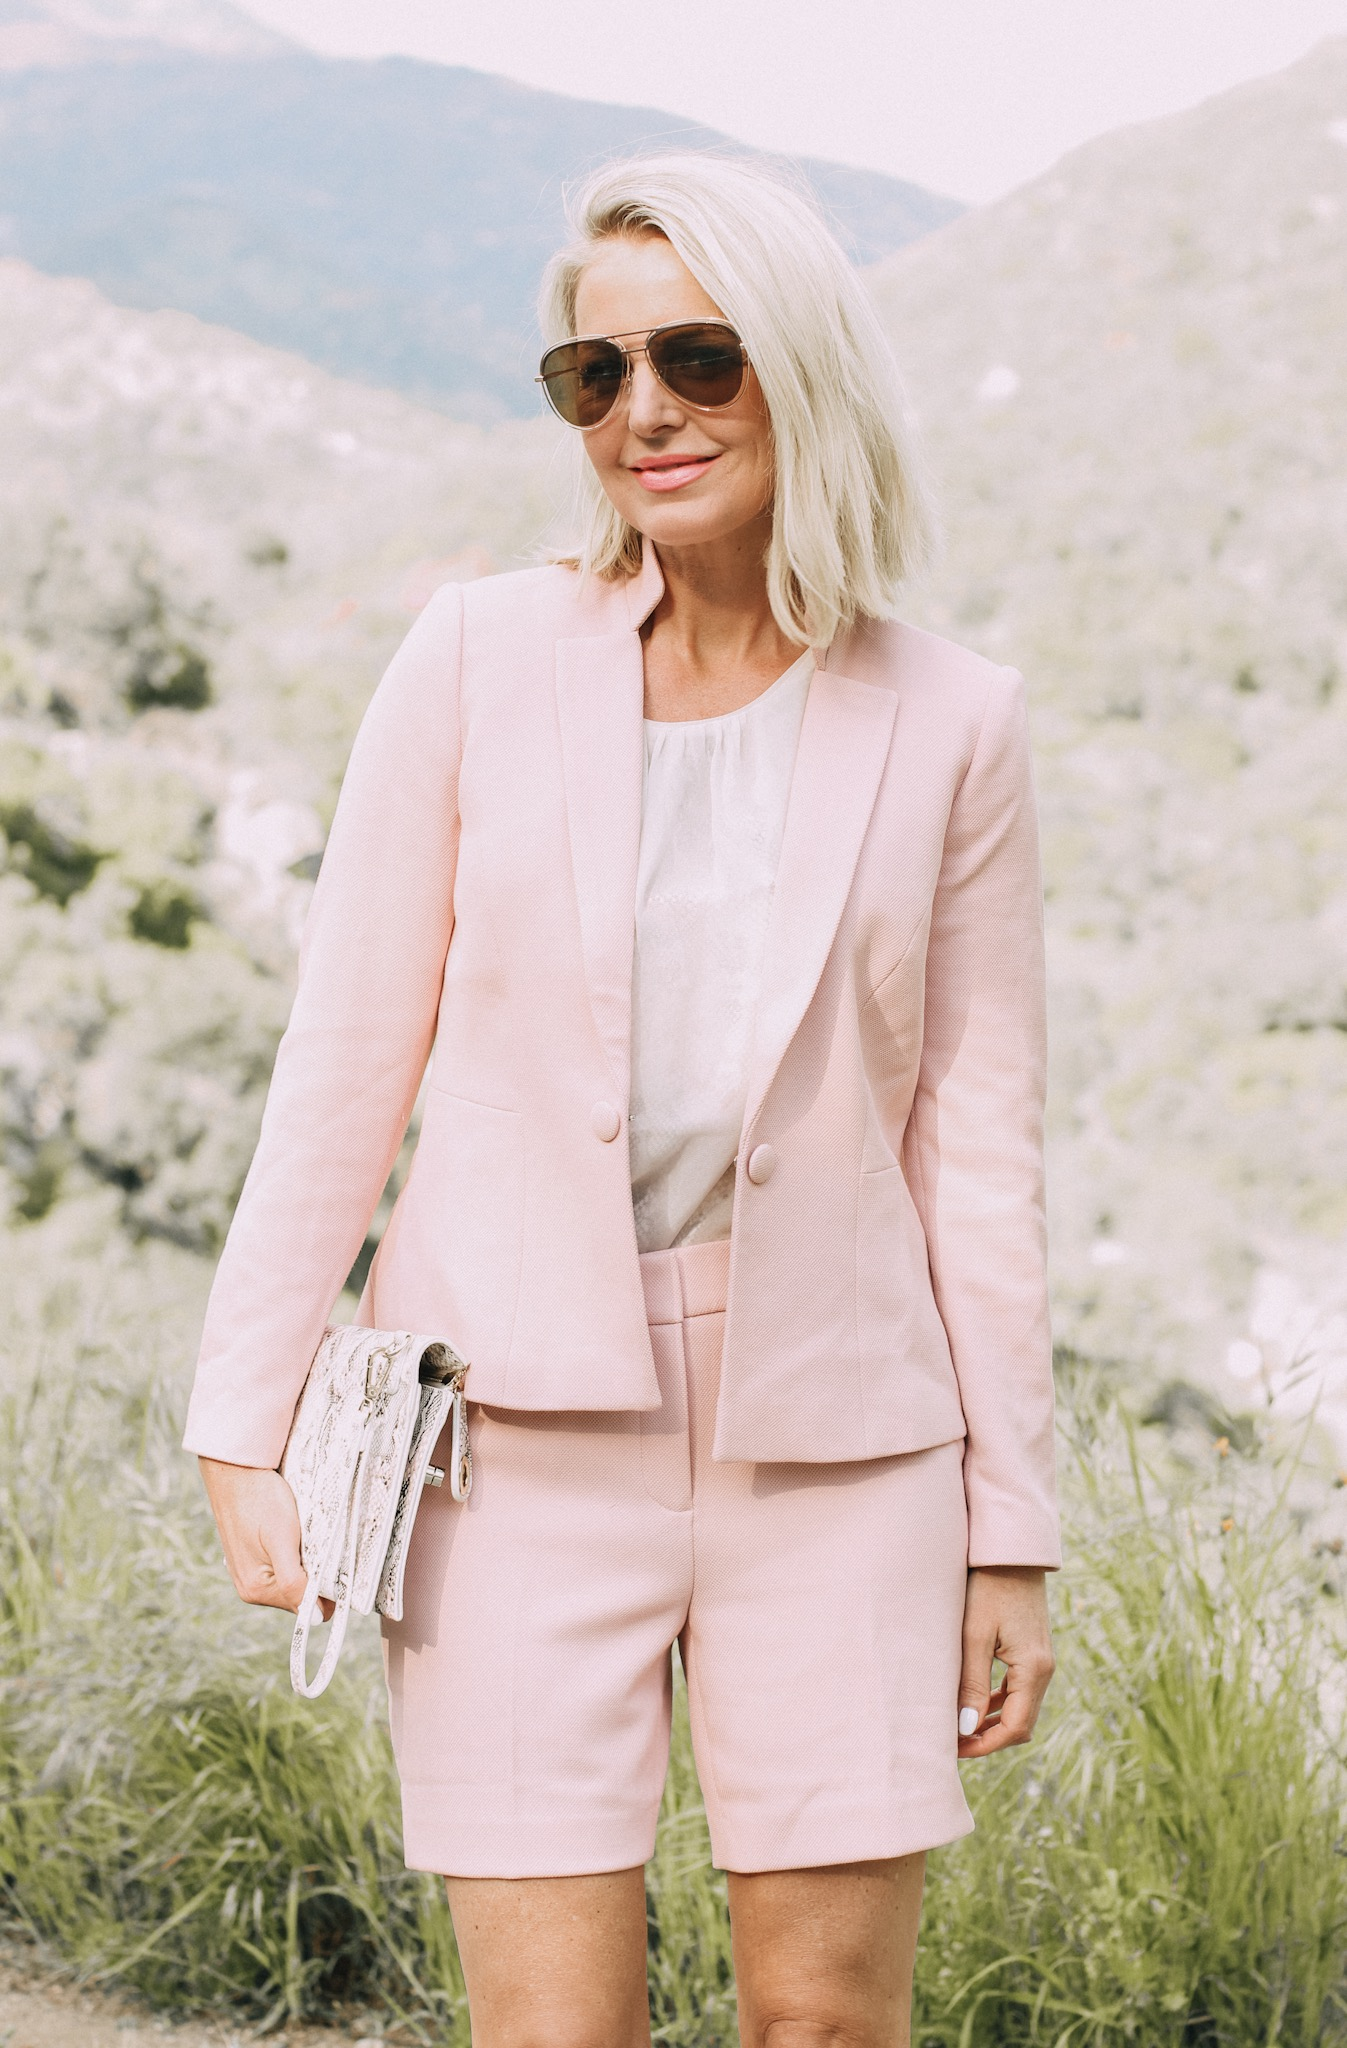 Spring Office Outfits, Fashion blogger Erin Busbee of BusbeeStyle.com wearing matching pink shorts and blazer with pink snake print heels and clutch from White House Black Market in Sequoia National Park